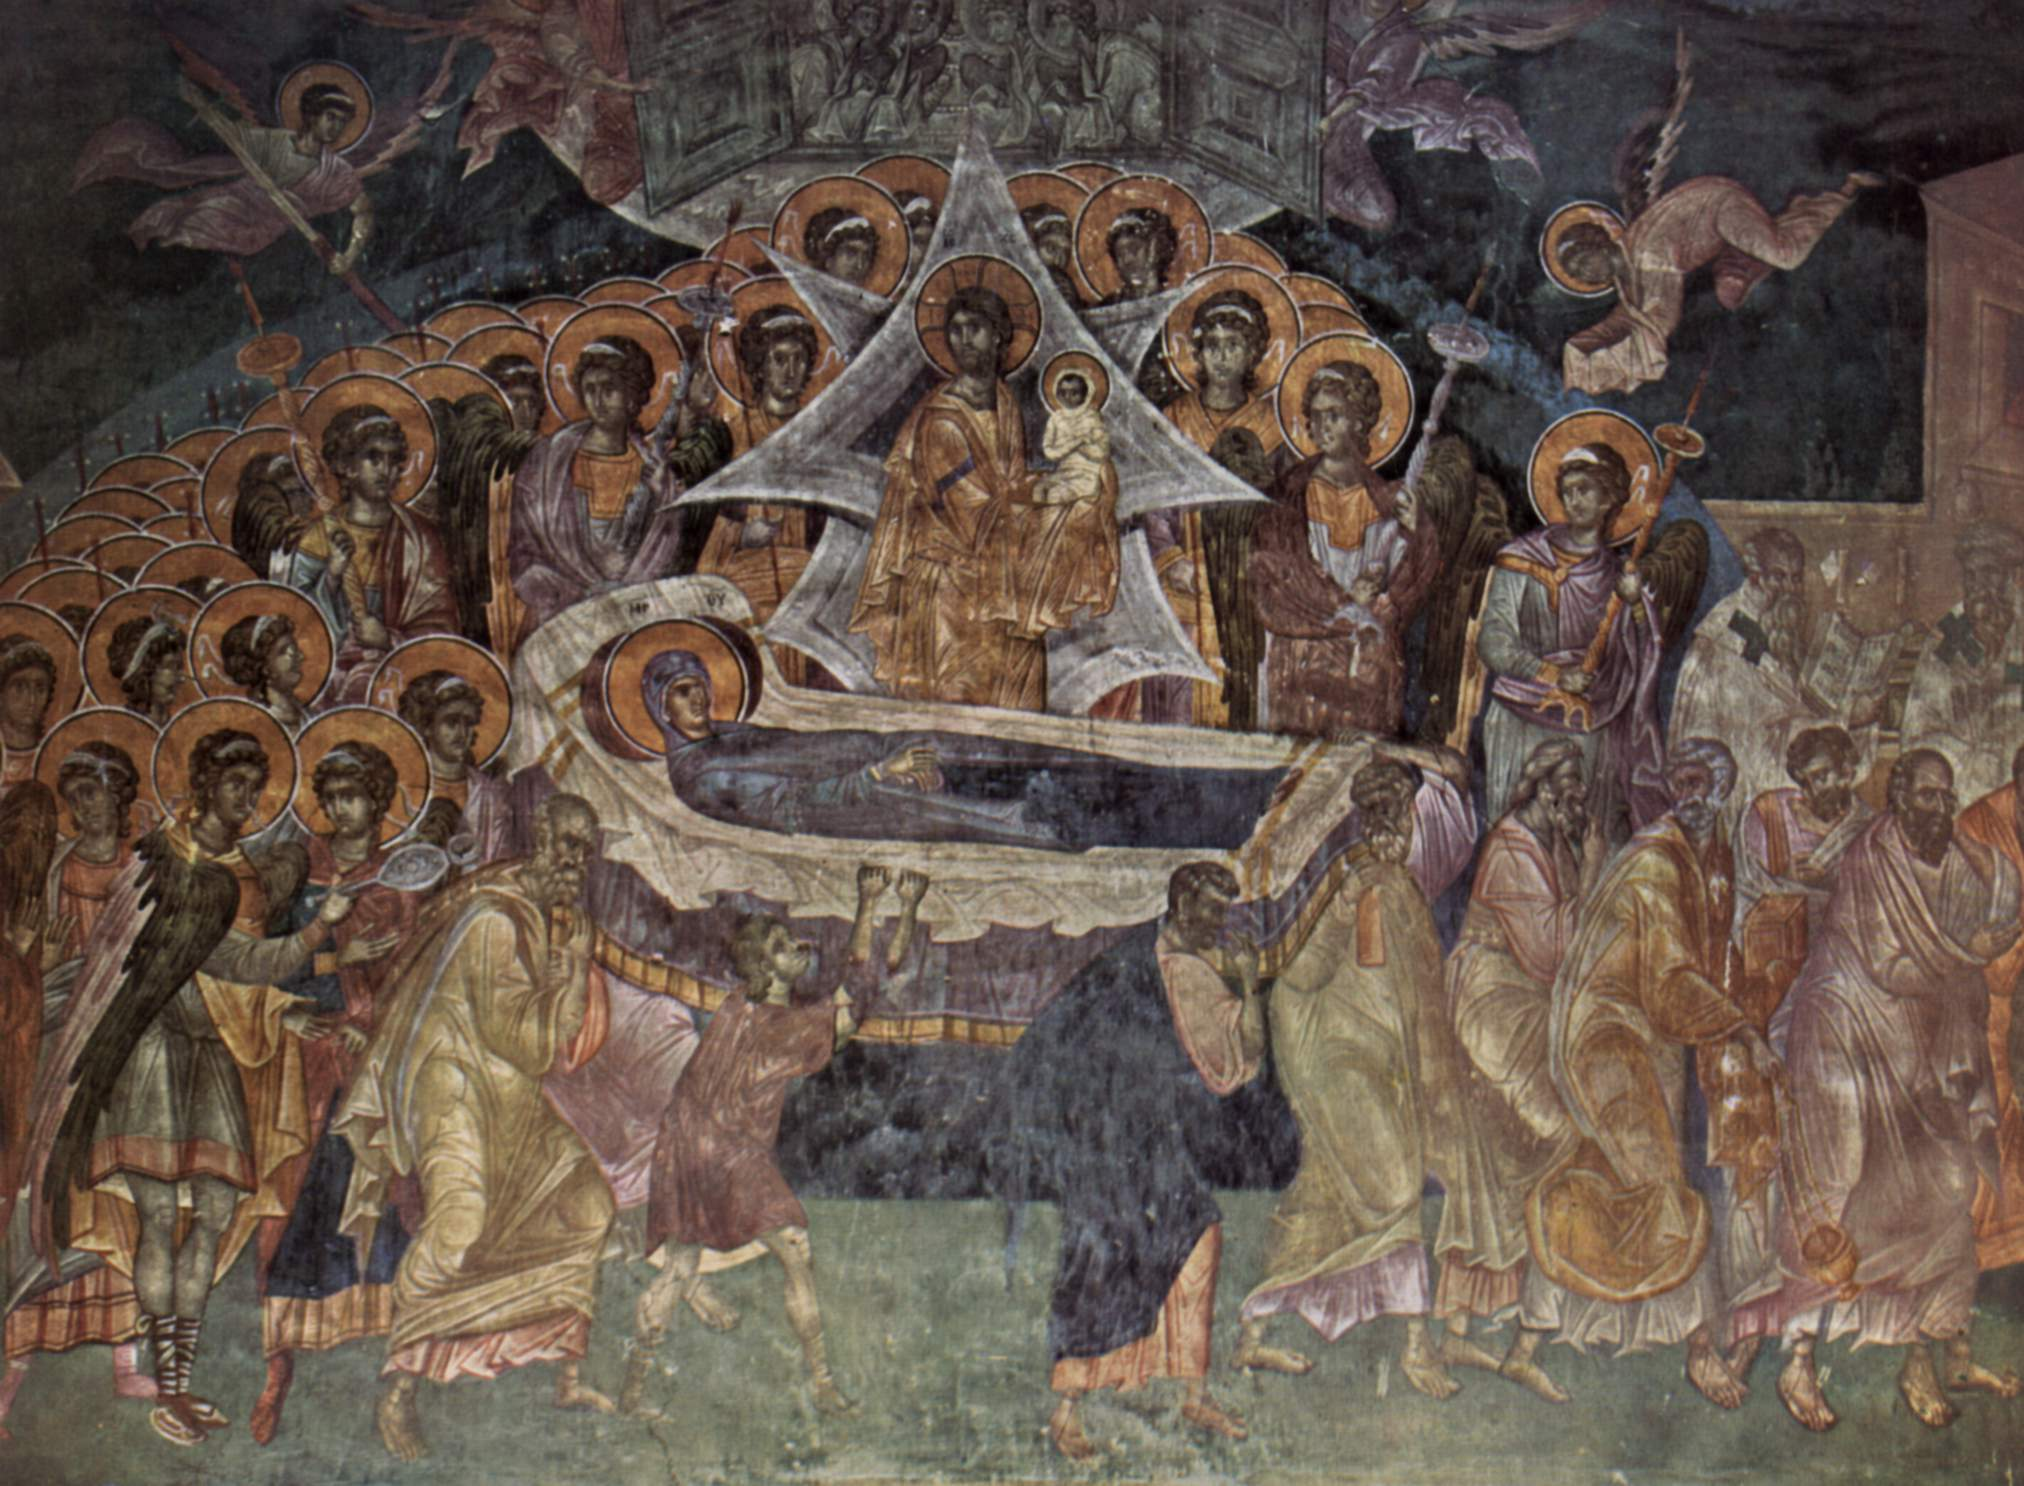 Gracanica_Monastery_Serbia-Dormition-of-The-Mother-of-God-Virgin_Mary